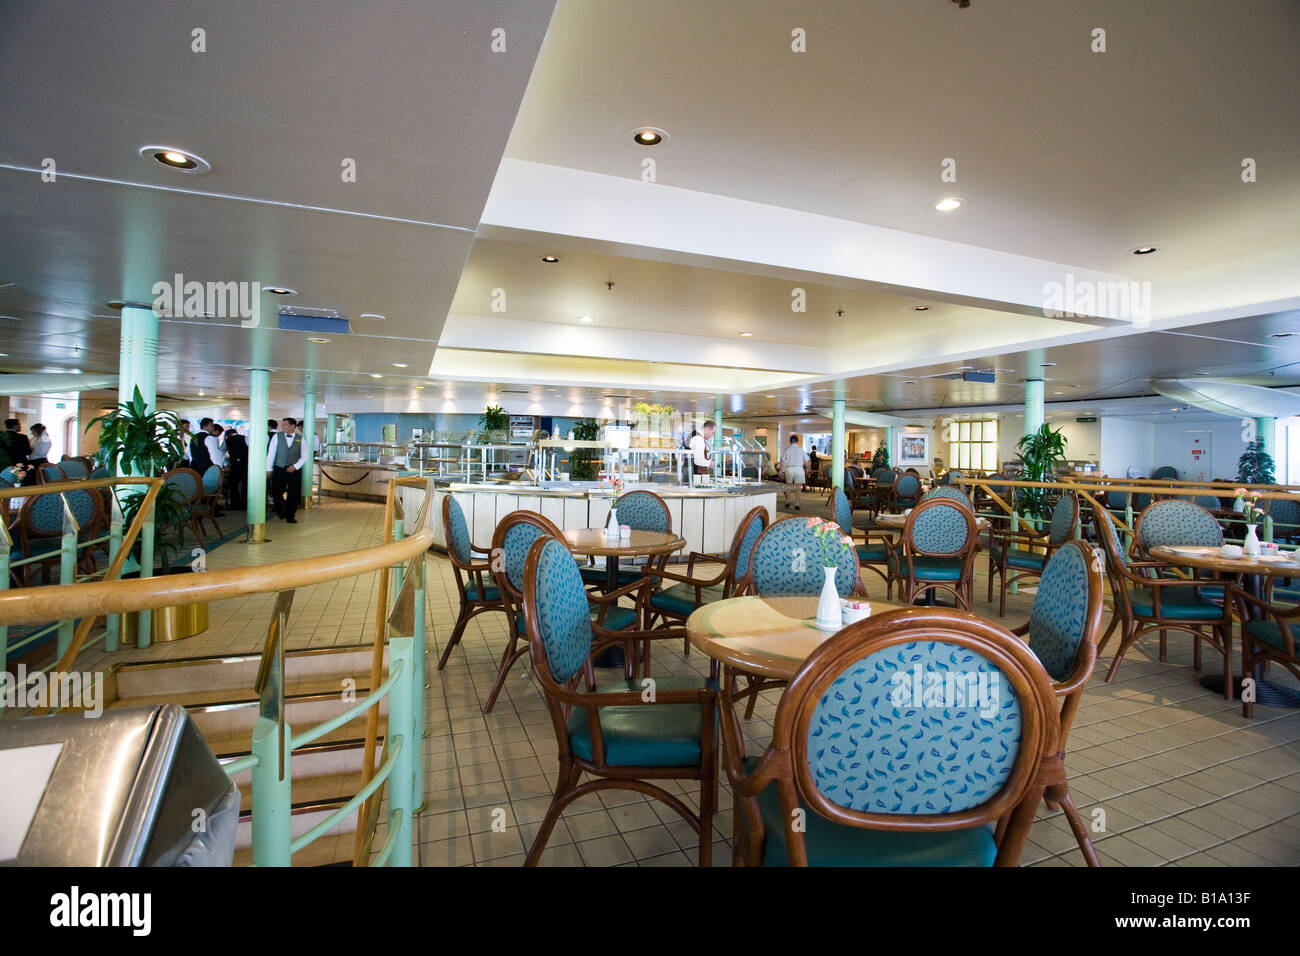 Lido Restaurant in the Cunard QE2 - Stock Image